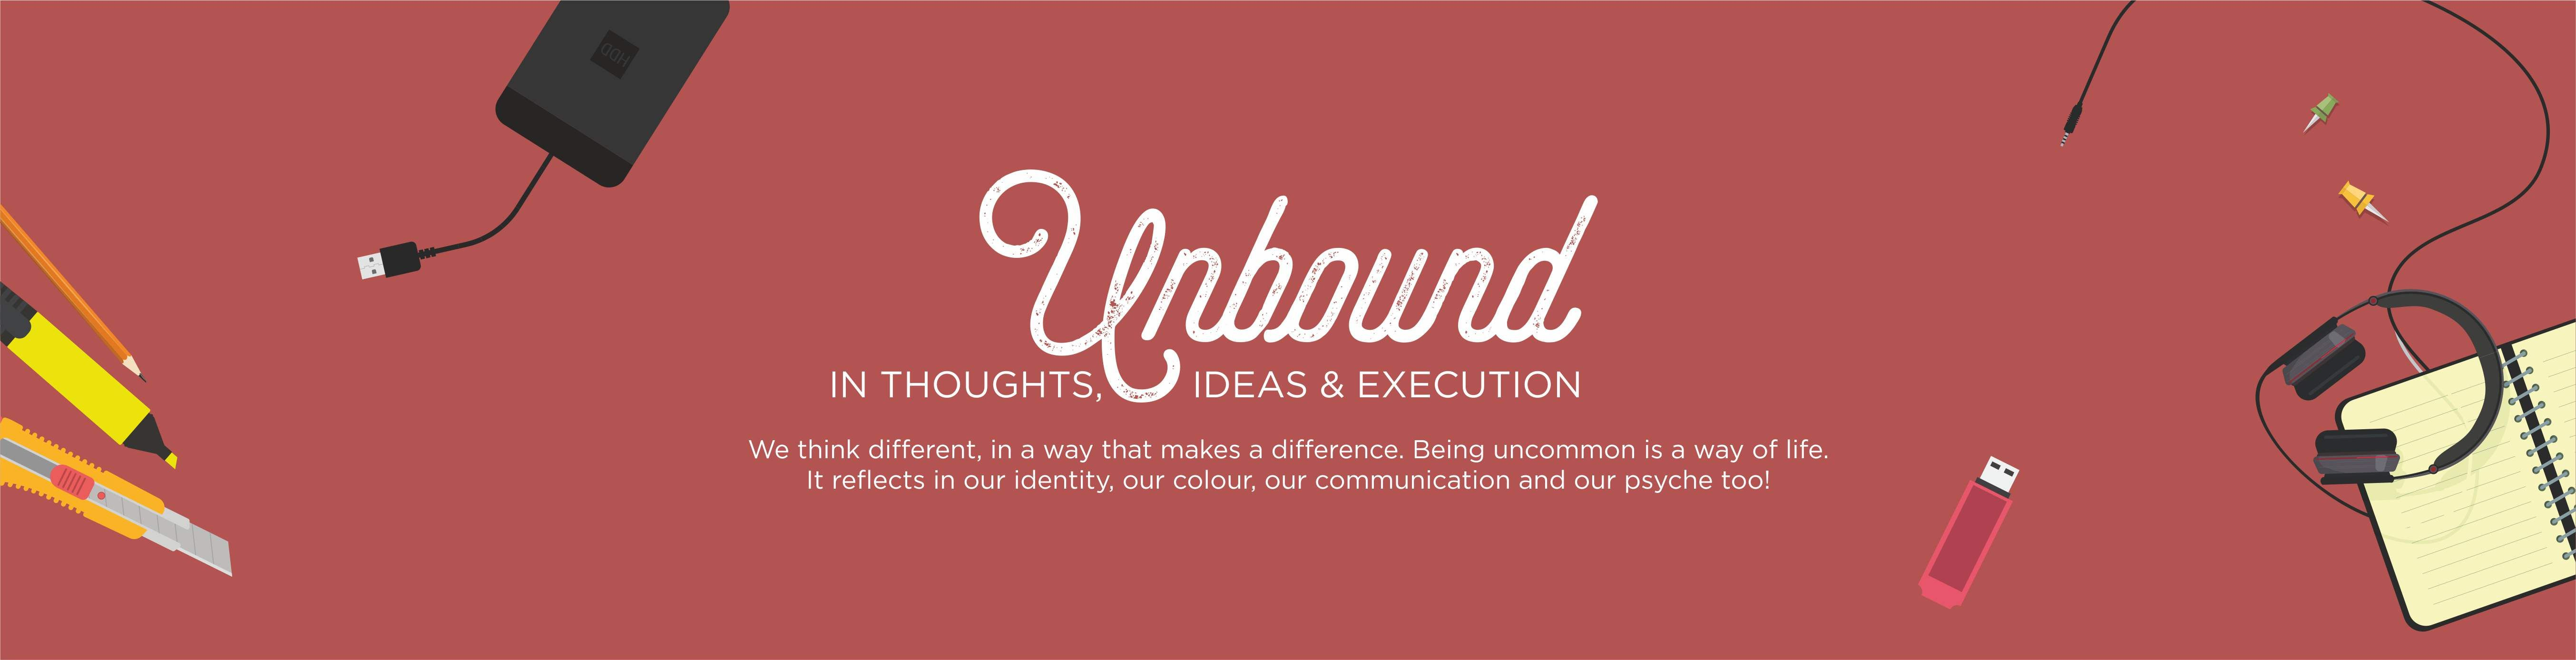 Unbound the Thoughts, Creative Ideas and Execution